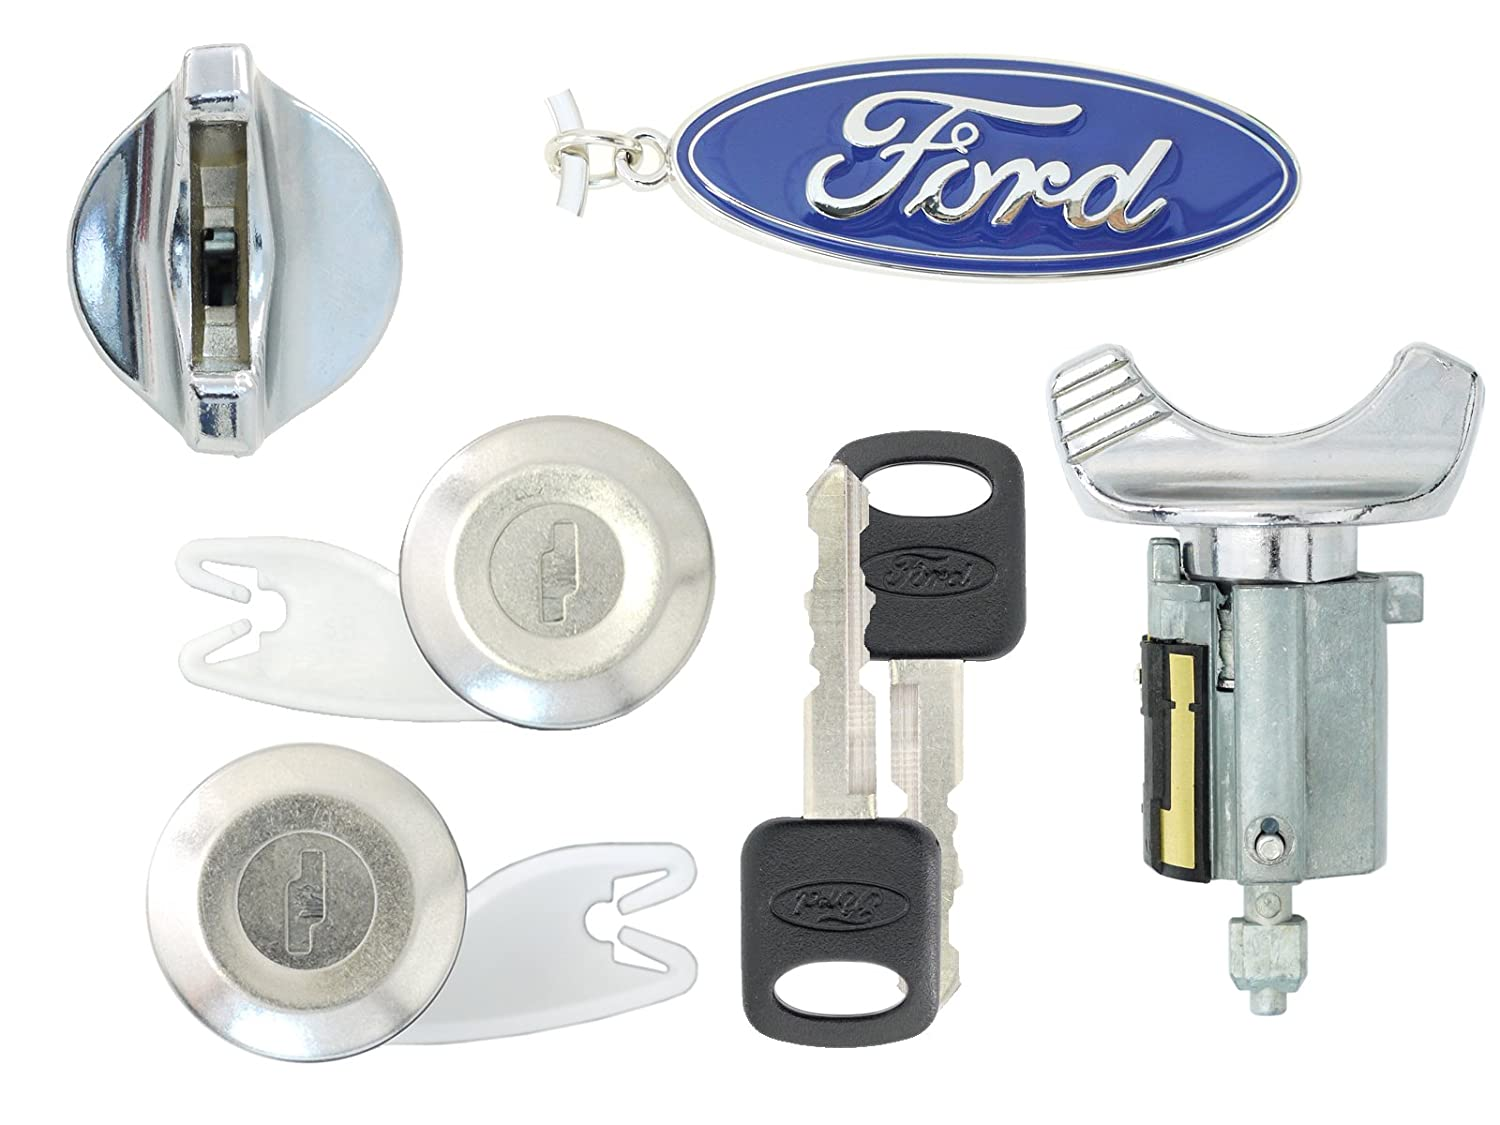 Ford 1992-95 Ignition /& Door Lock Cylinders with 2 Keys Chrome F250 Pick Up F150